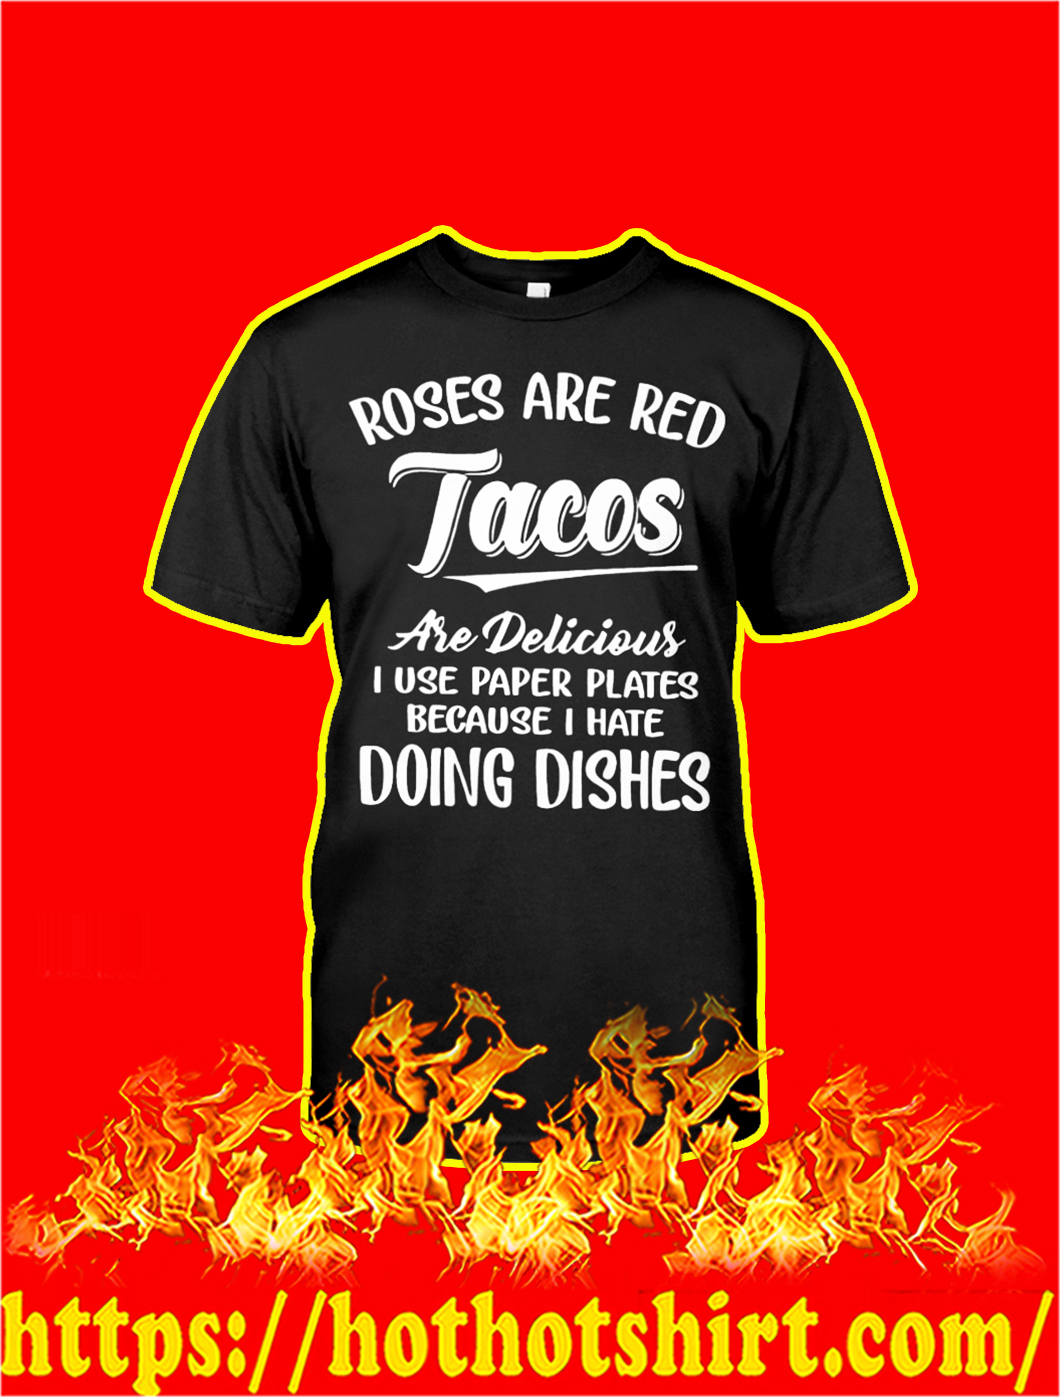 Roses Are Red Tacos Are Delicious T-shirt